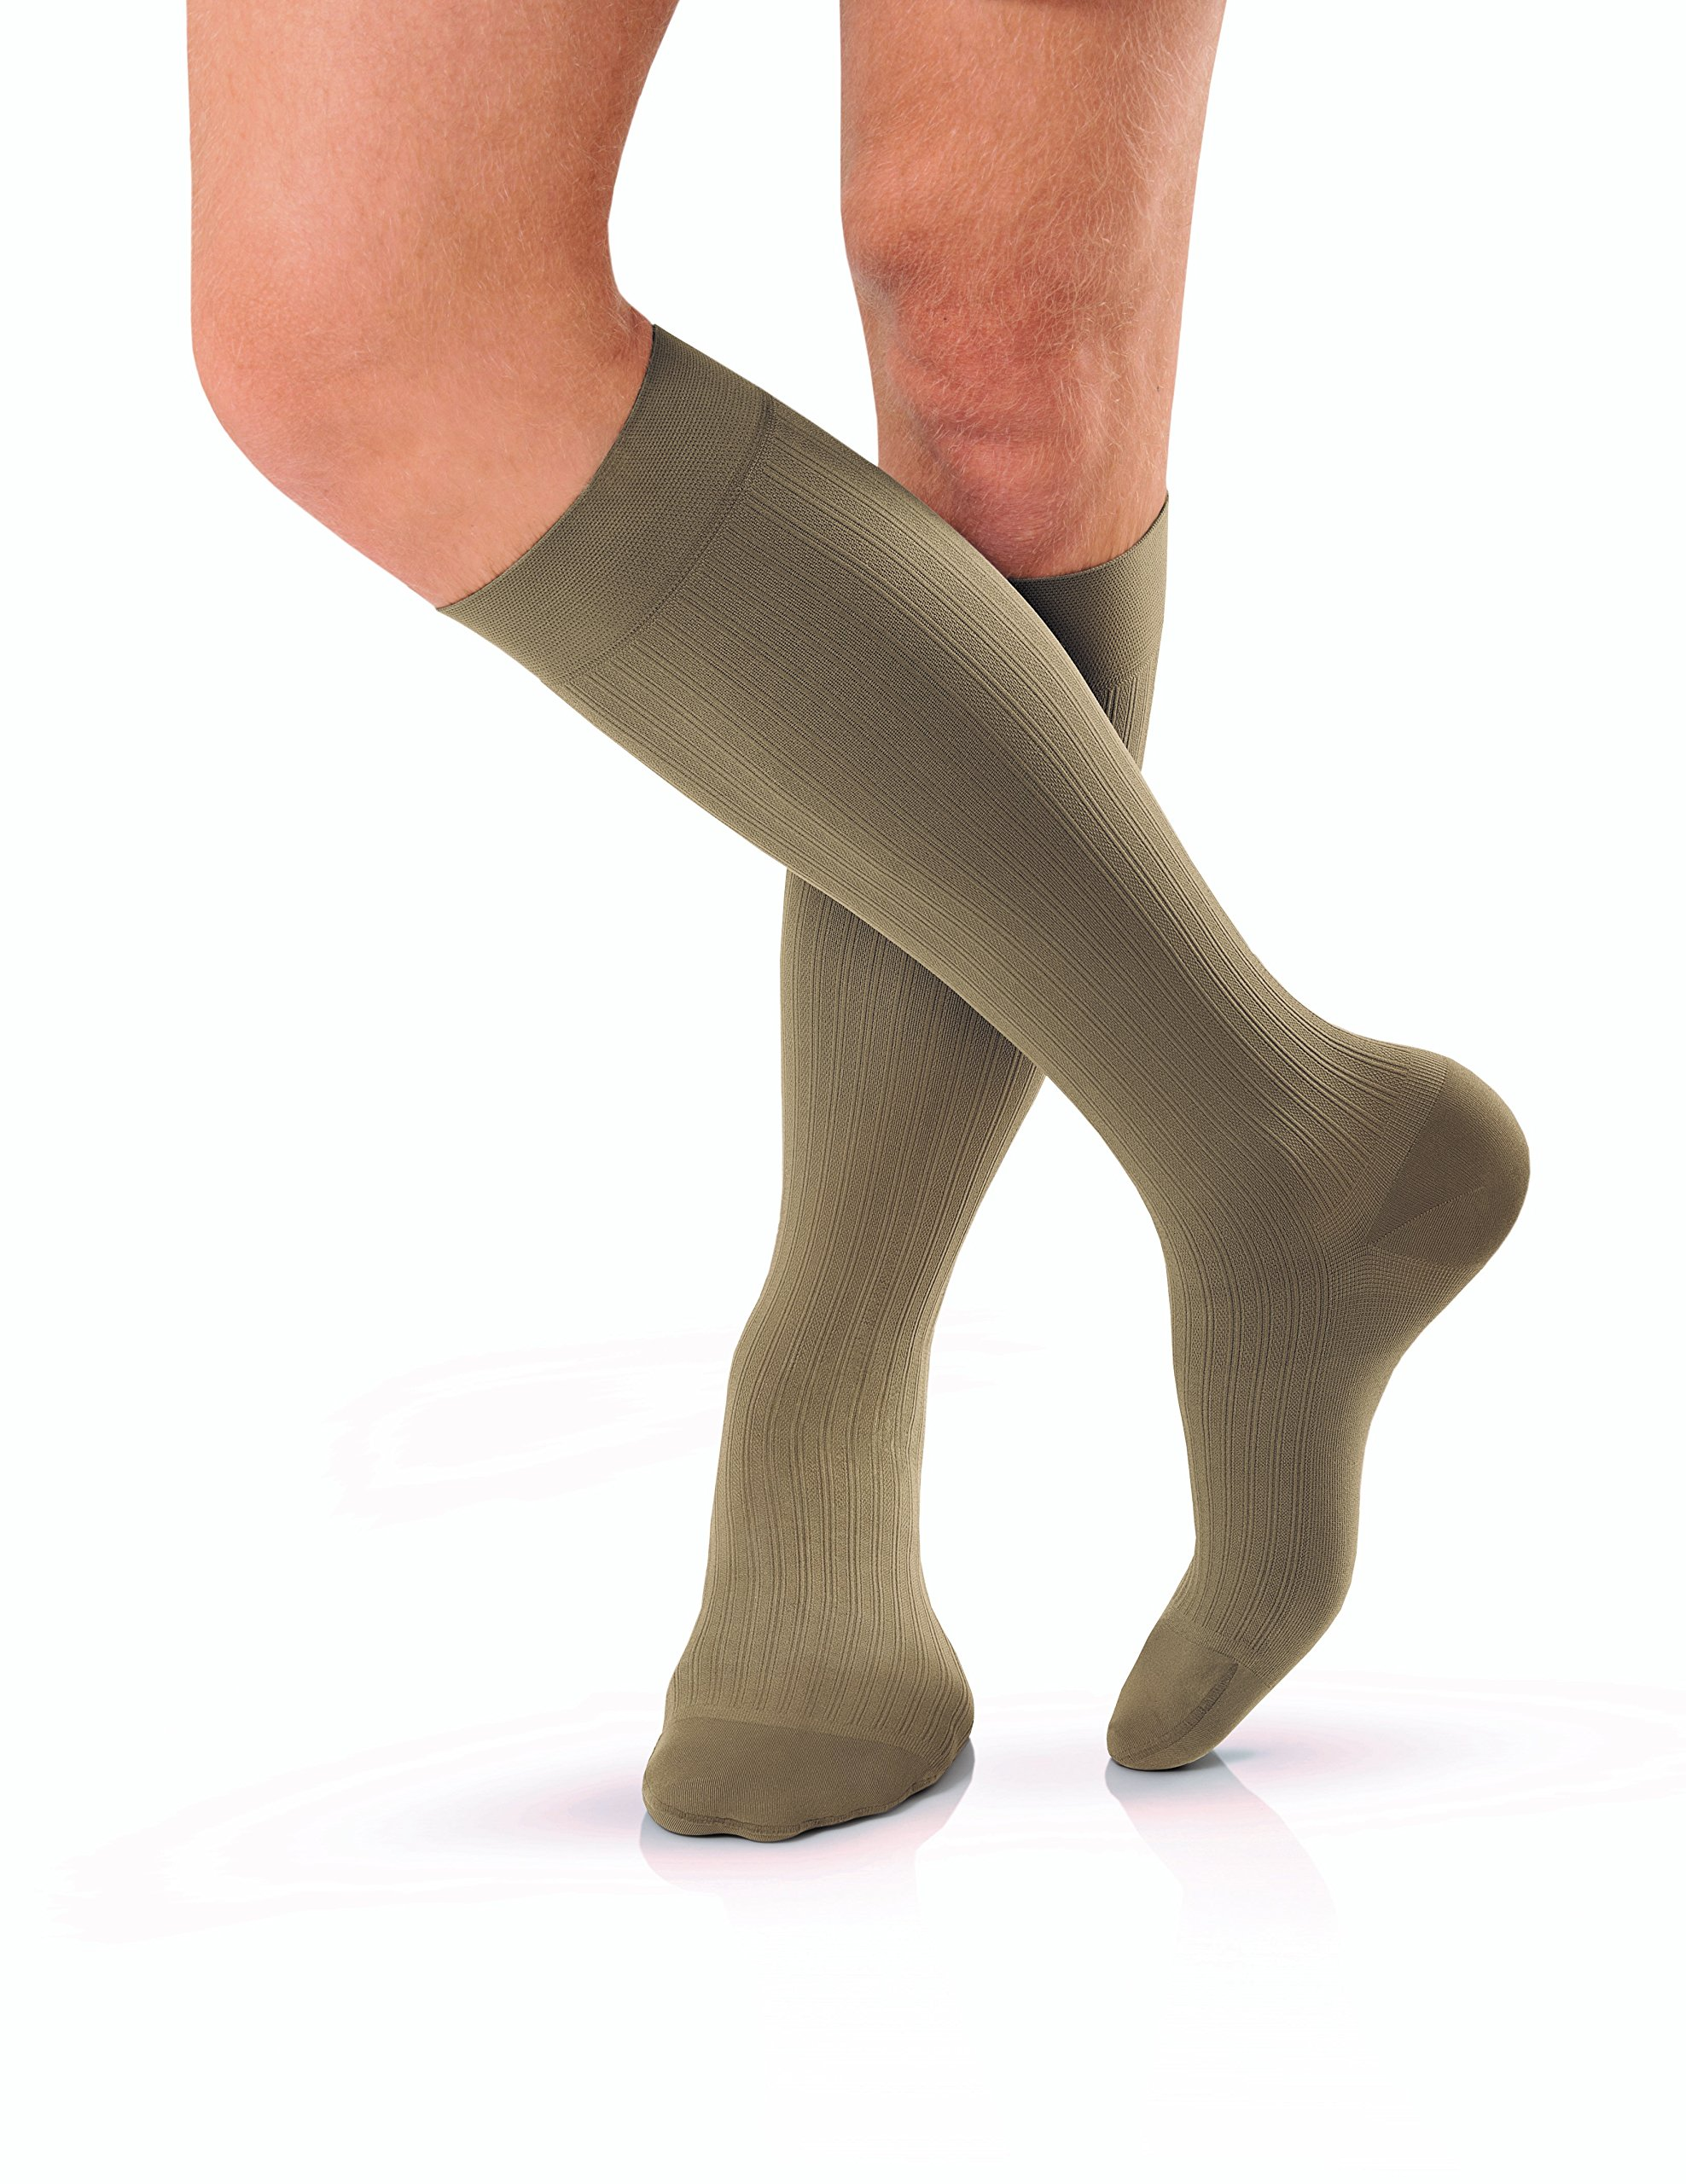 JOBST forMen Knee High 20-30 mmHg Ribbed Dress Compression Socks, Closed Toe, Large, Khaki